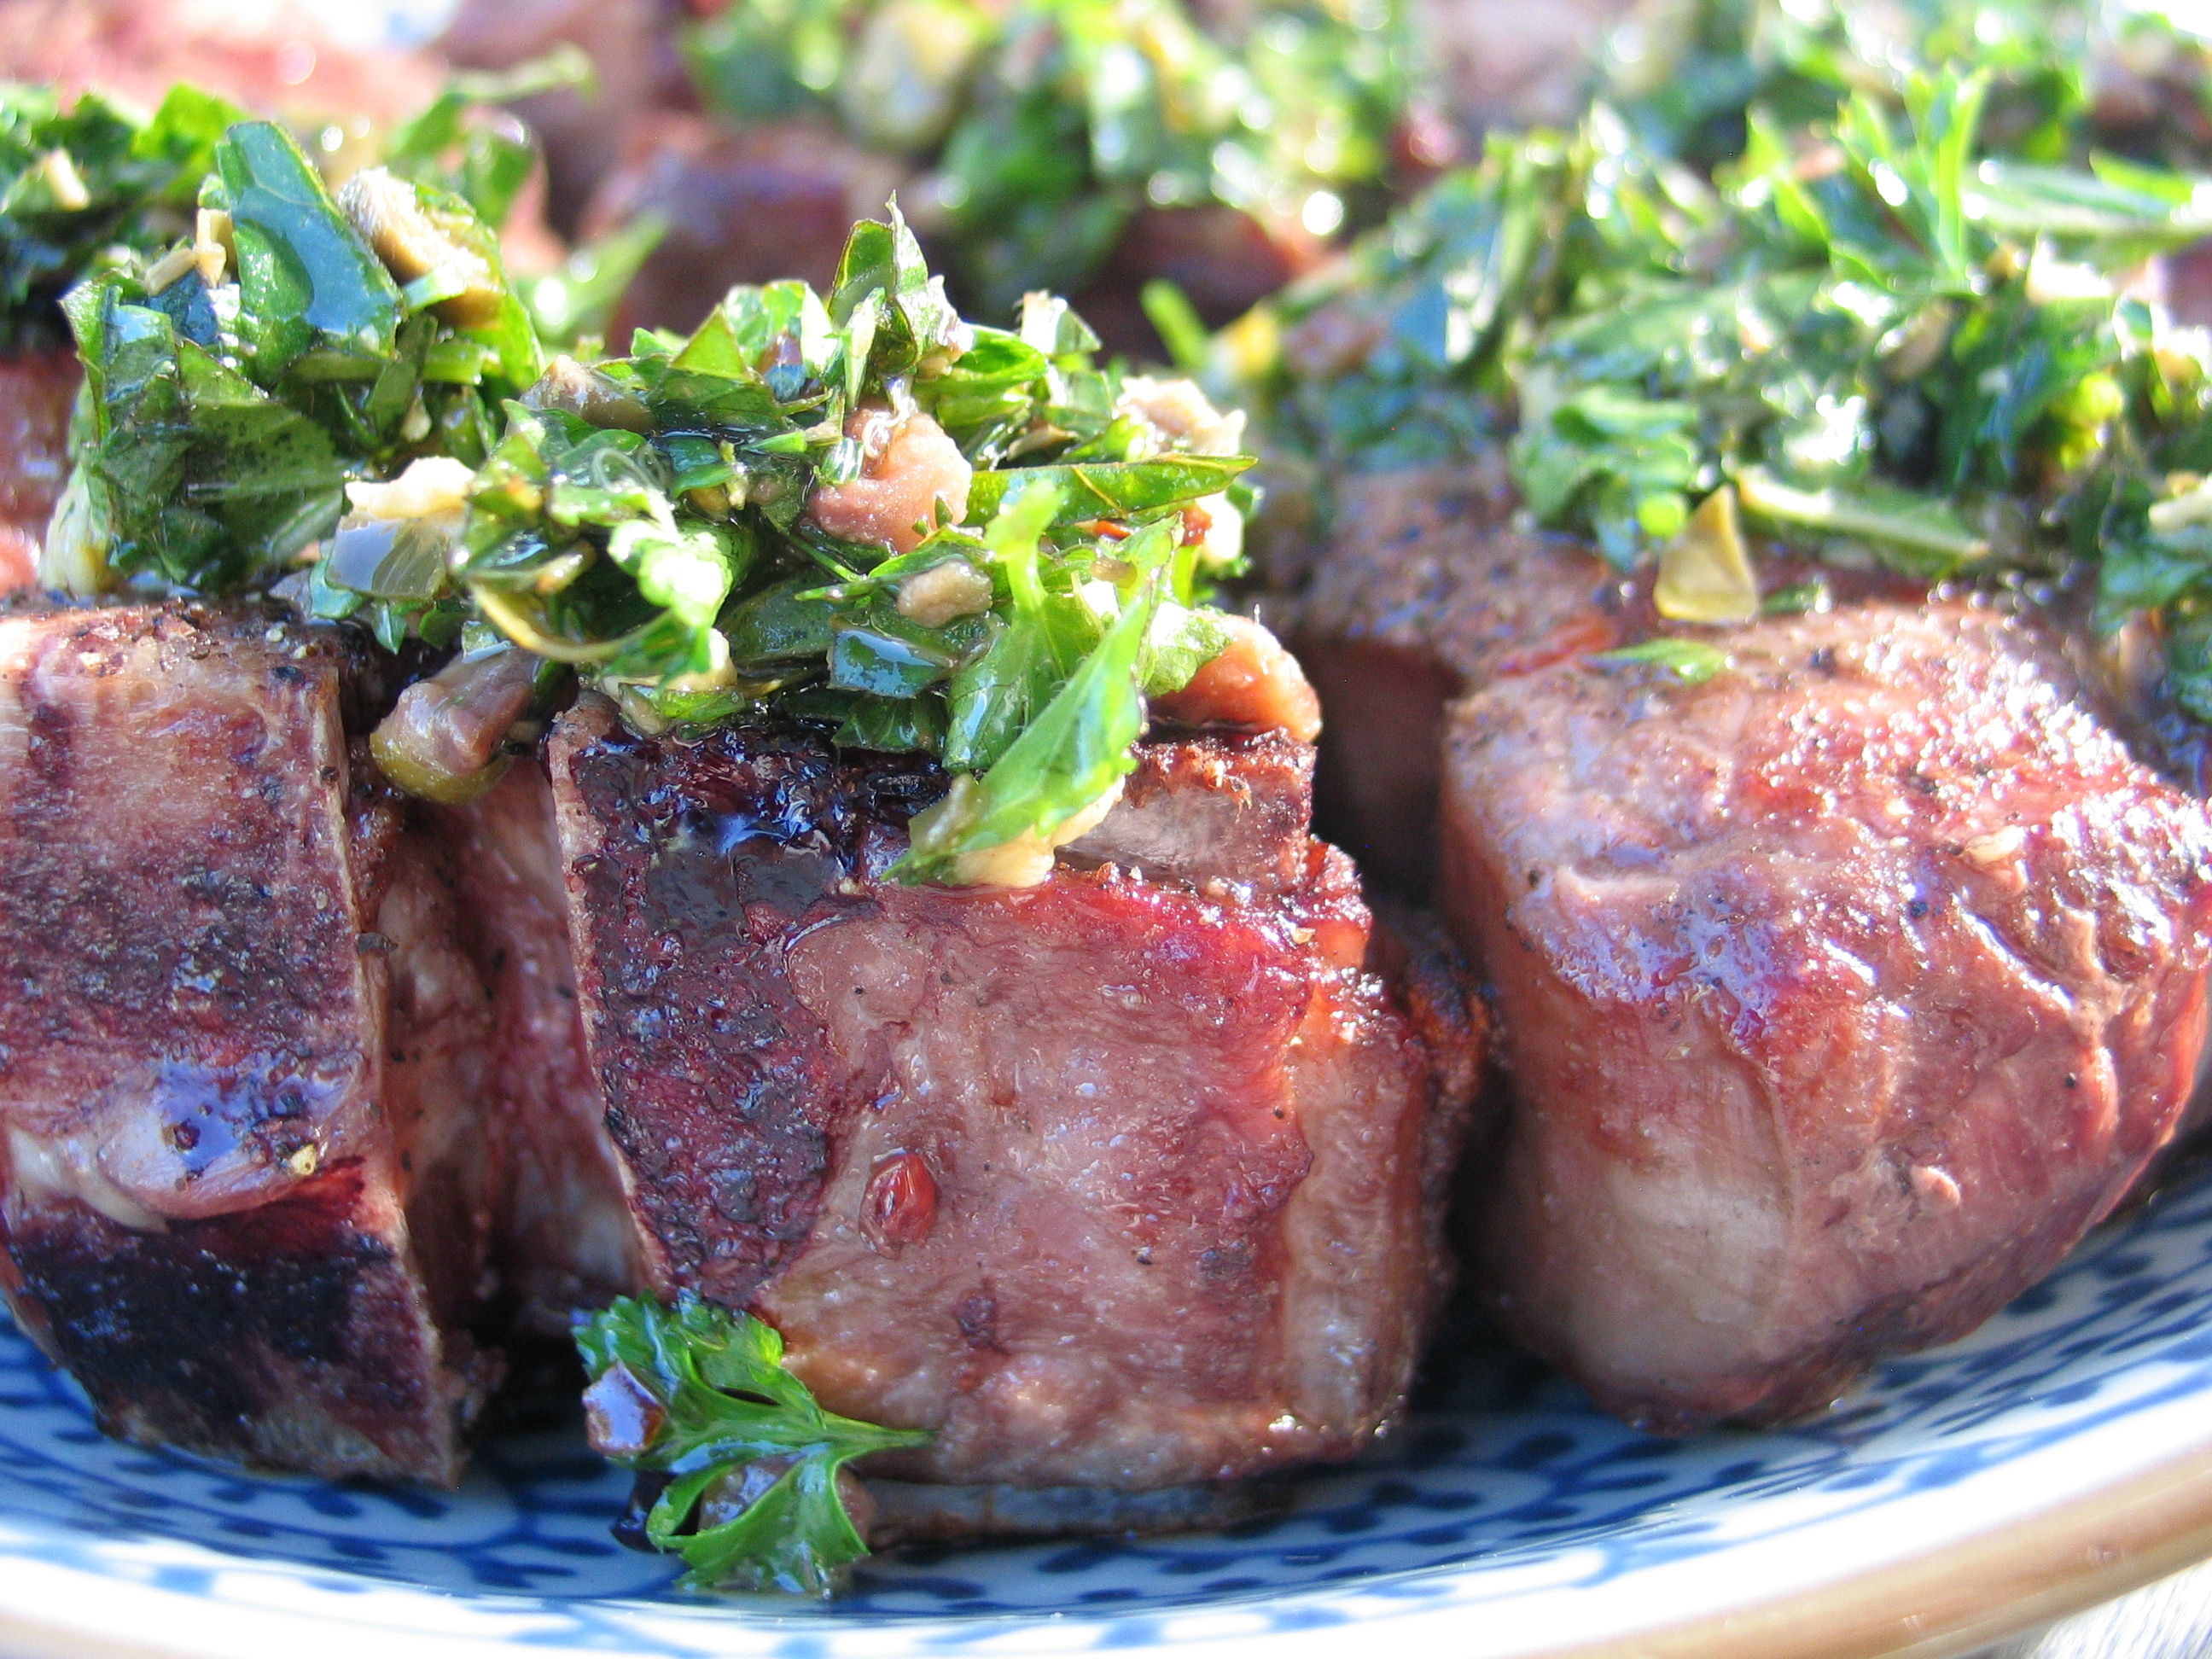 Deanna's Daughter | Lamb Chops with Mint Salsa Verde